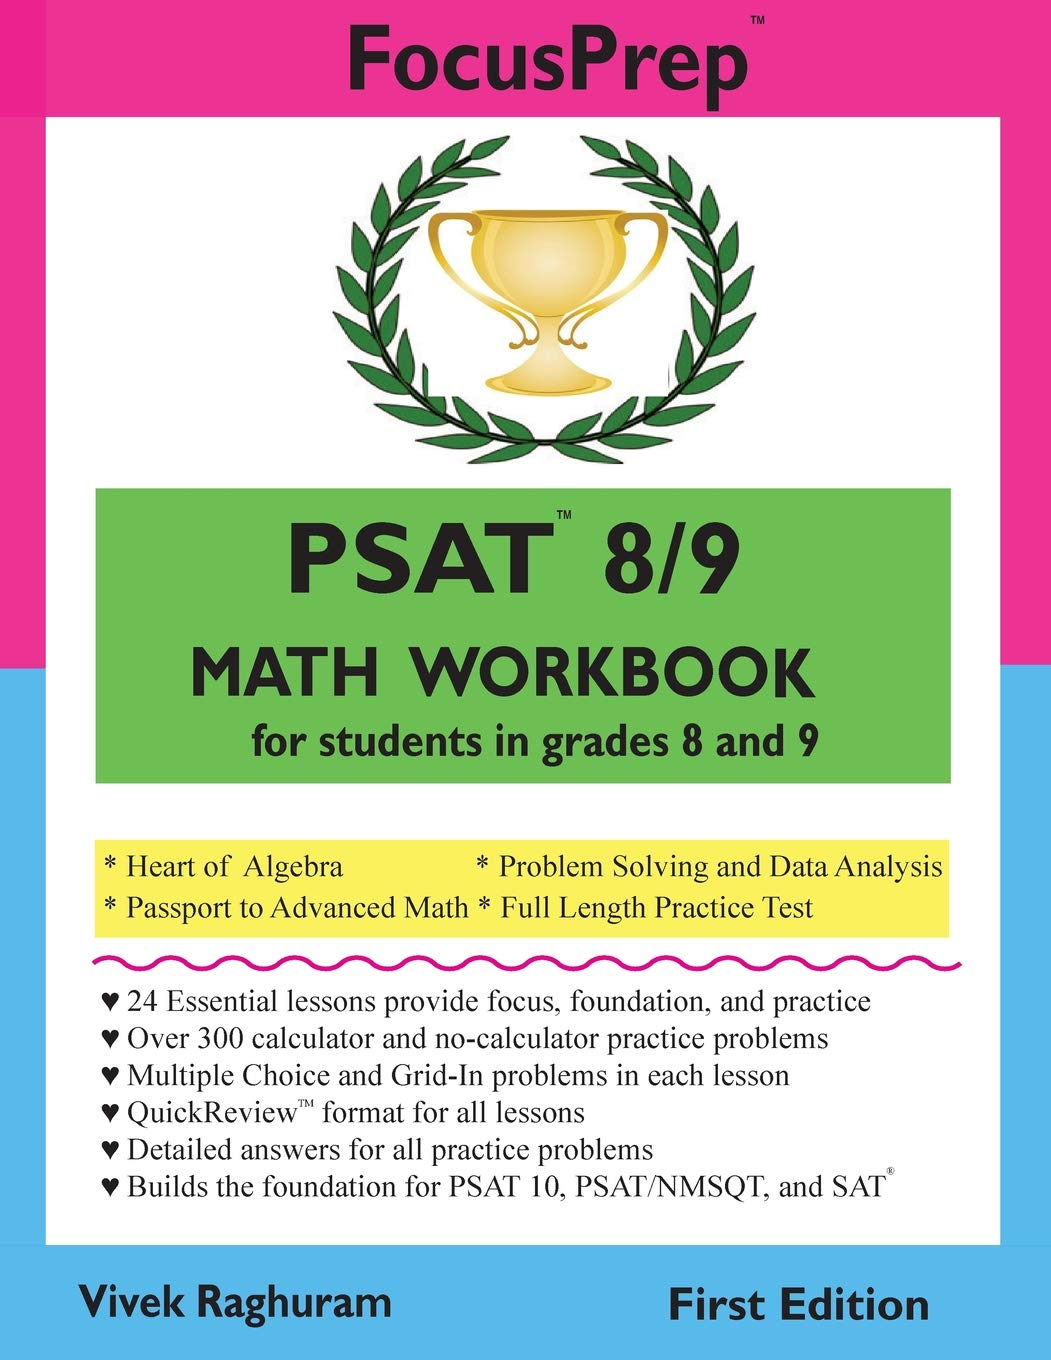 PSAT 8/9 MATH Workbook: for students in grades 8 and 9. (FocusPrep) pdf epub